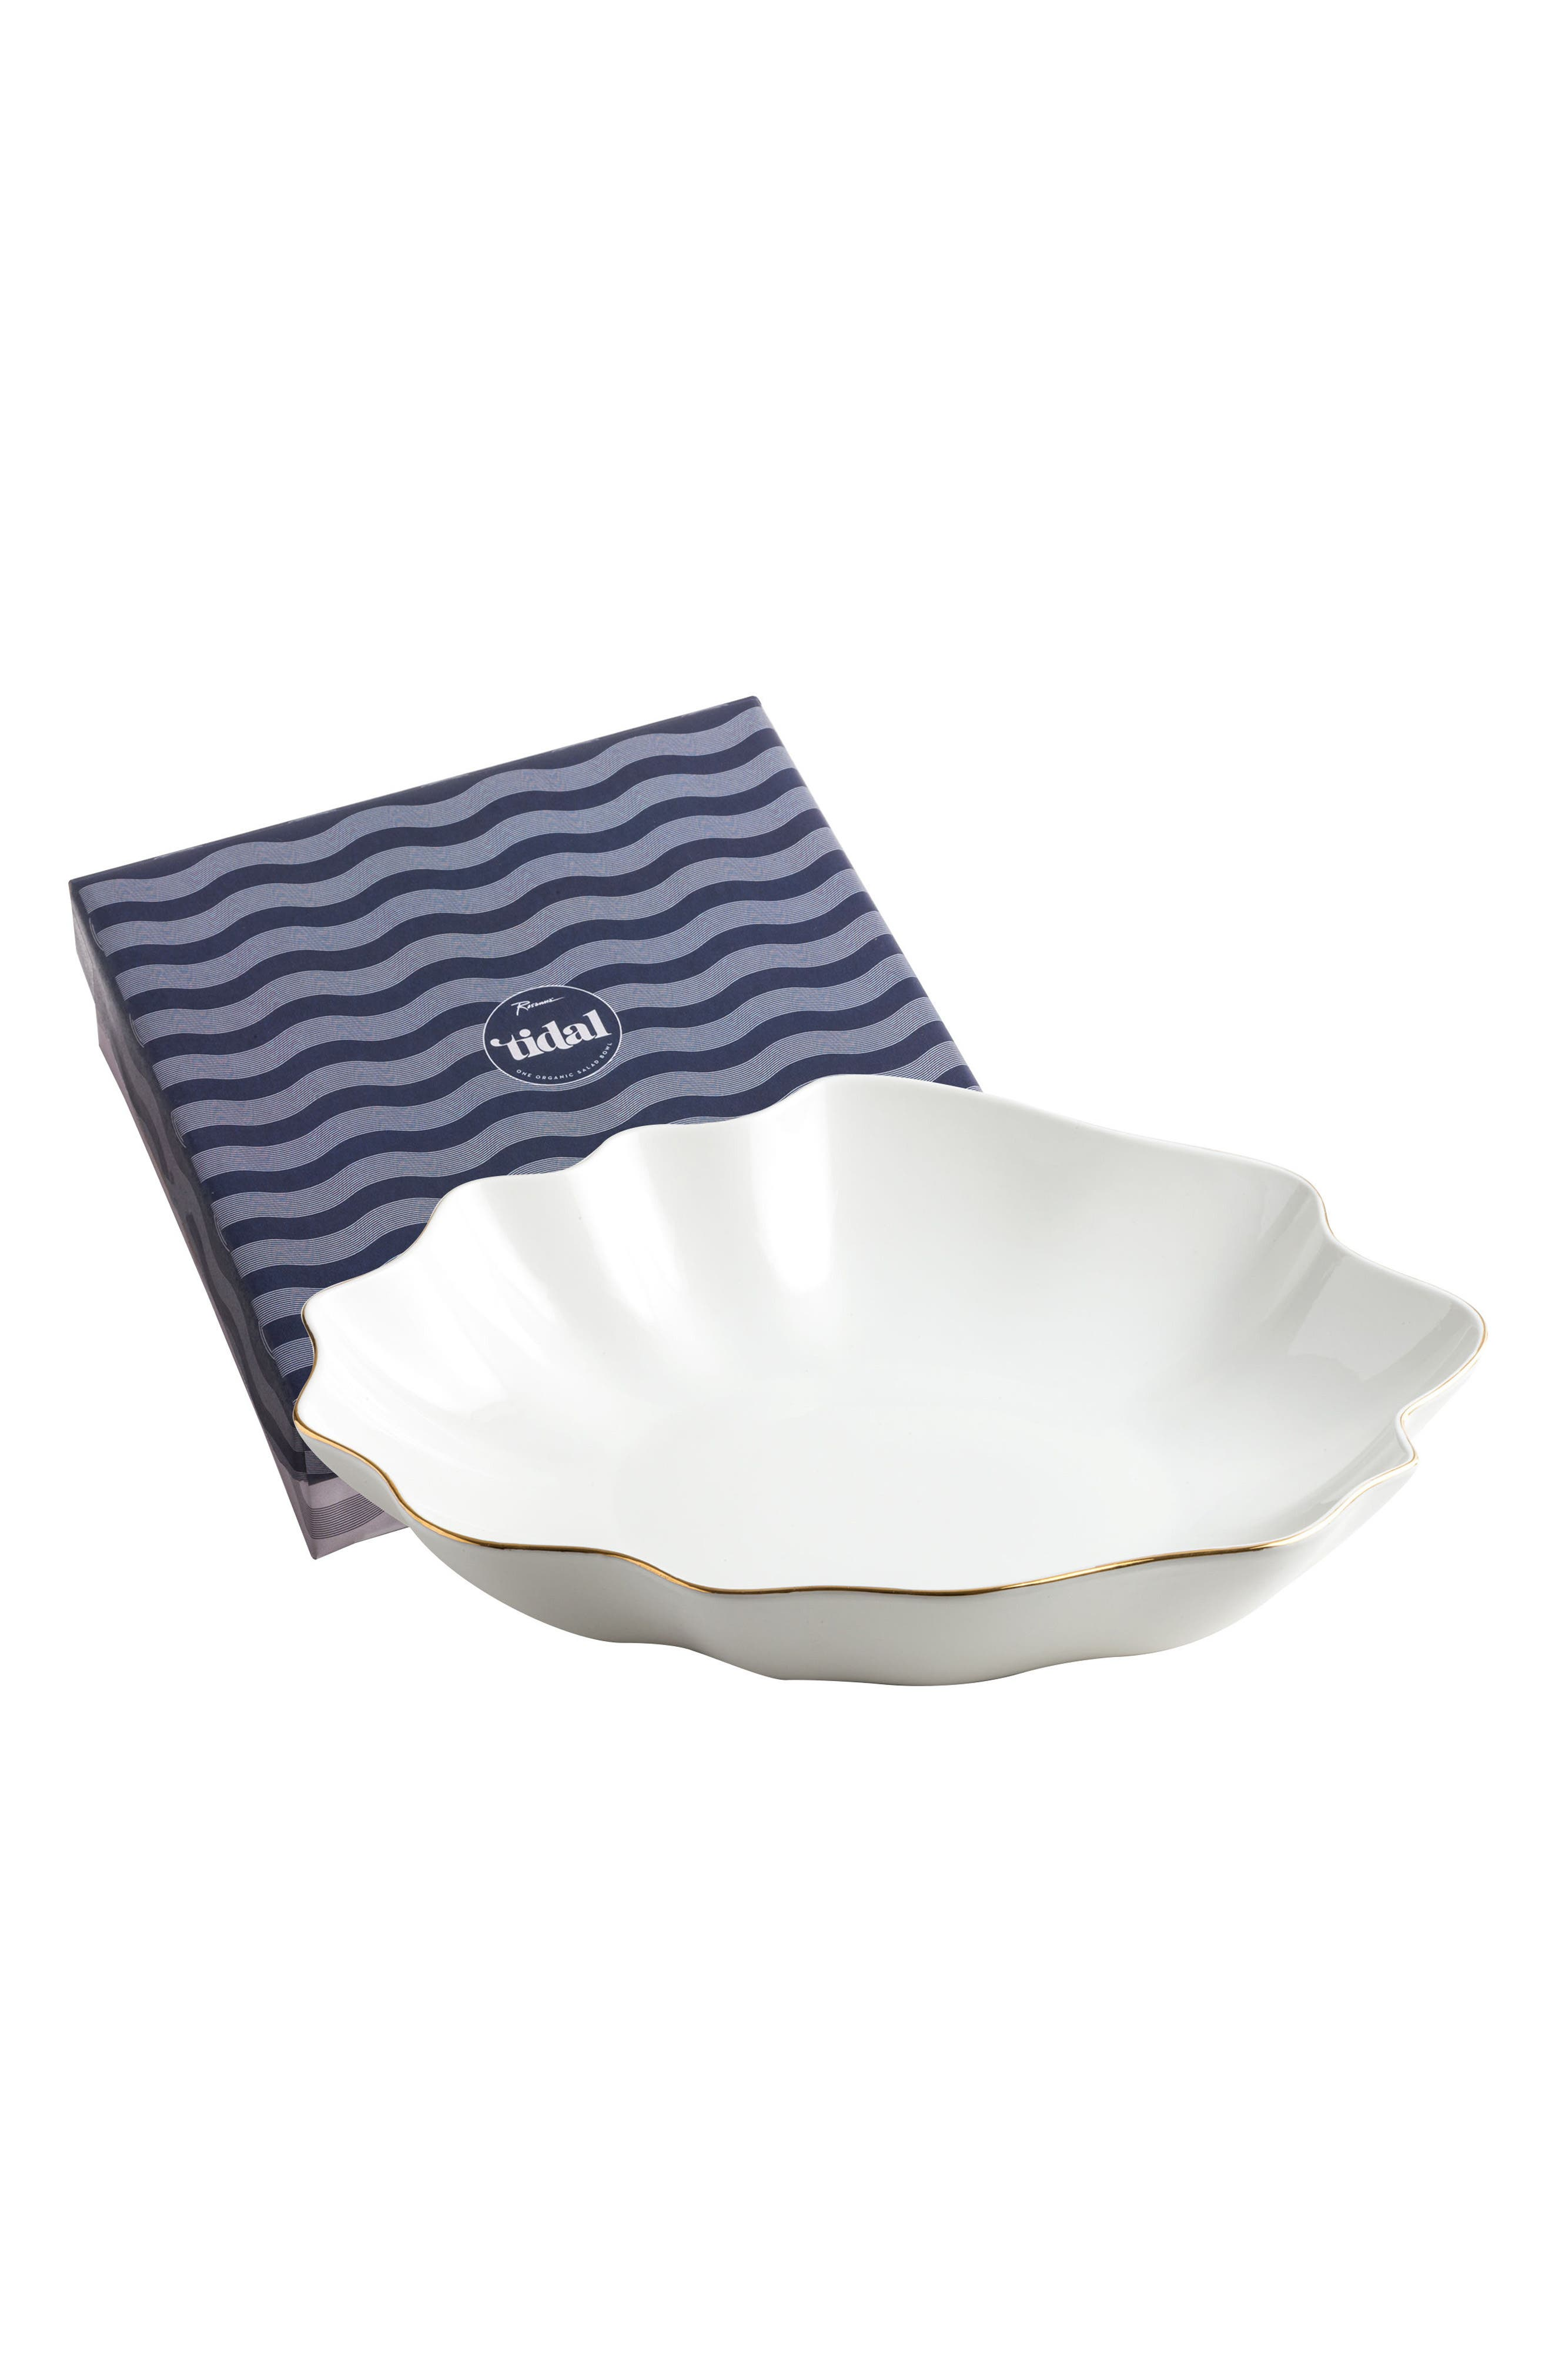 ROSANNA Salad Serving Bowl, Main, color, 100